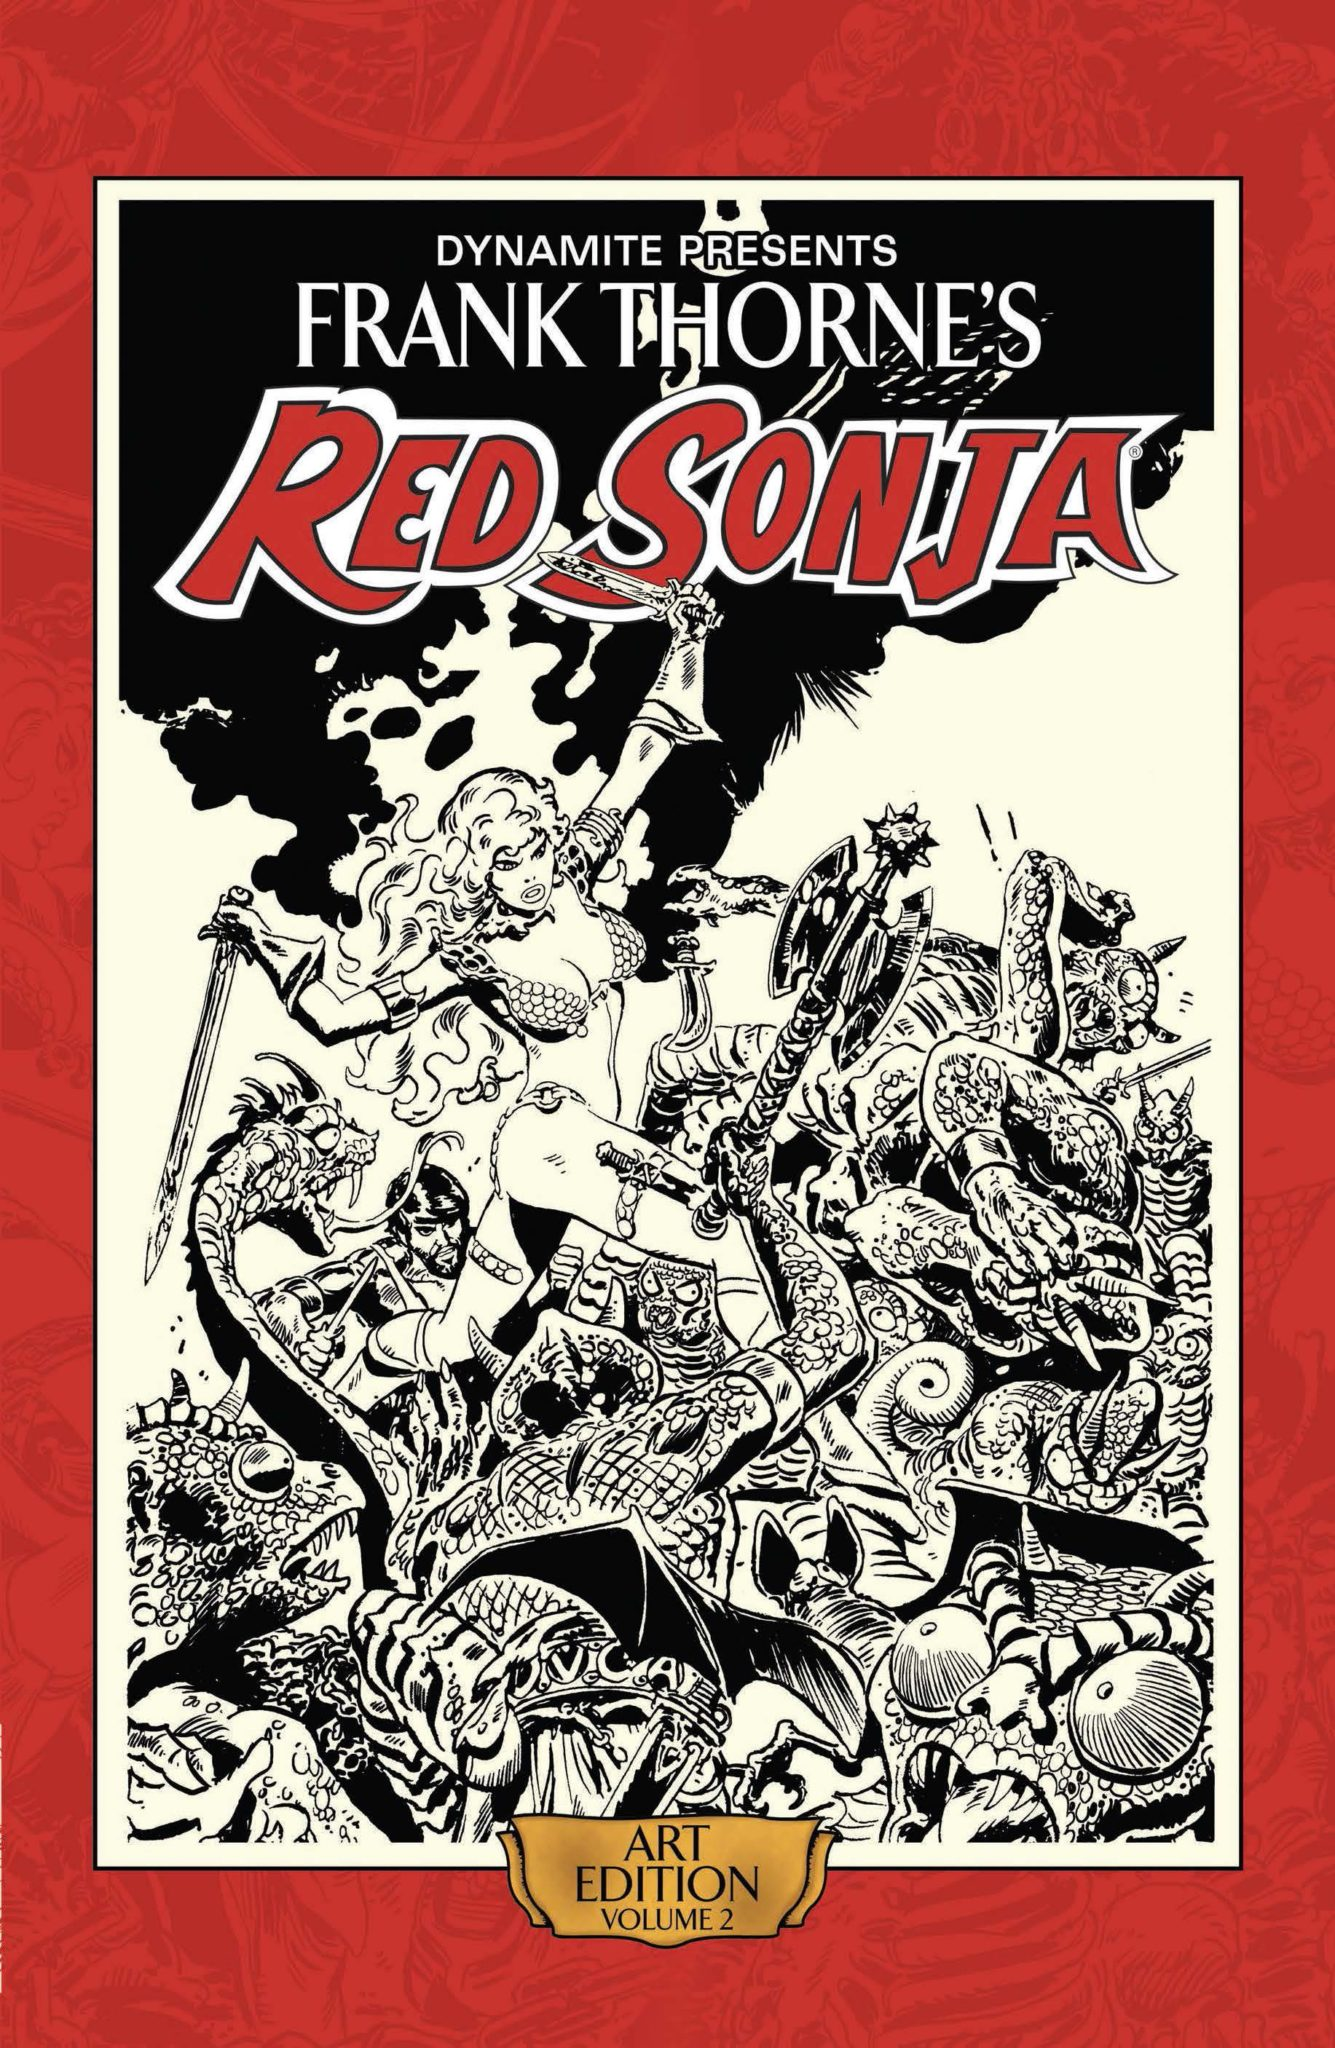 Review | Frank Thorne's Red Sonja Art Edition Vol 2